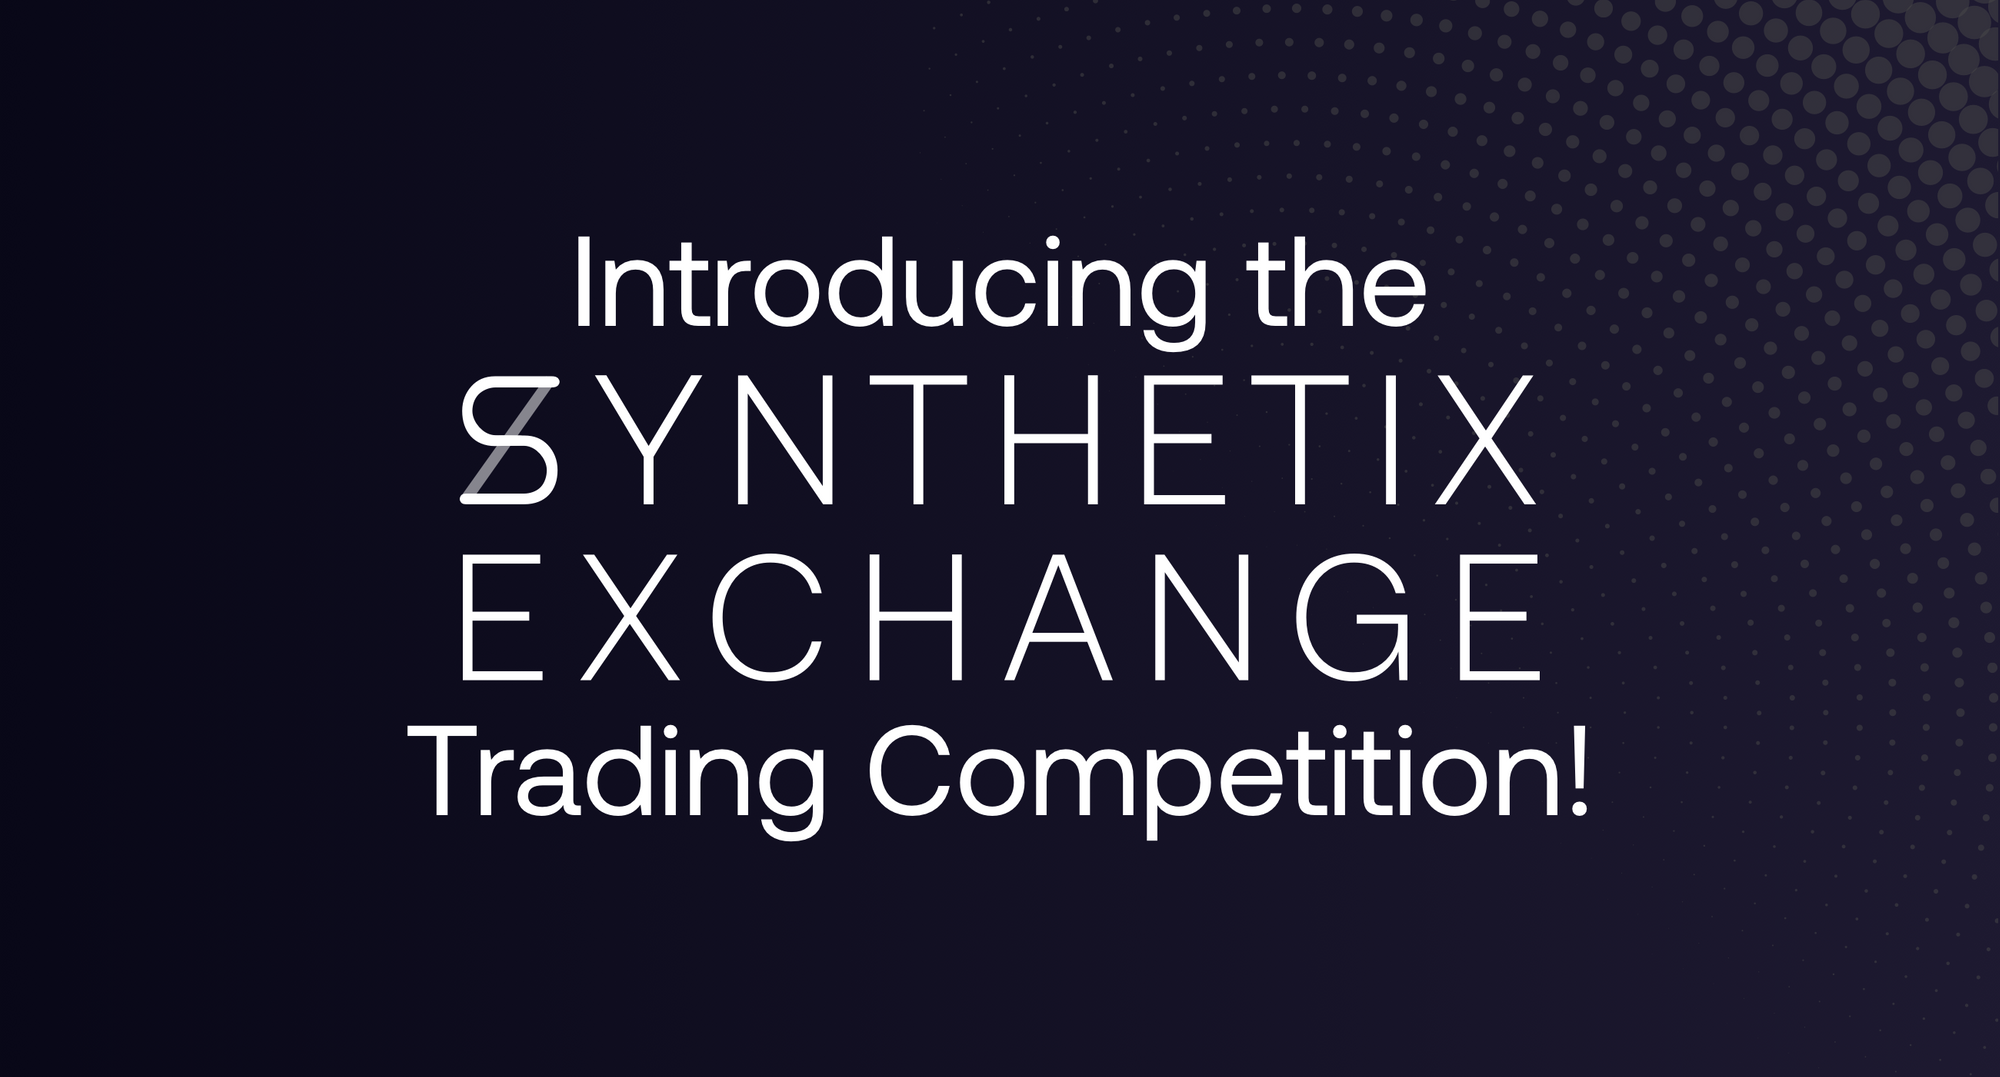 Win a share of 4000 sUSD in our first ever Synthetix.Exchange trading competition!